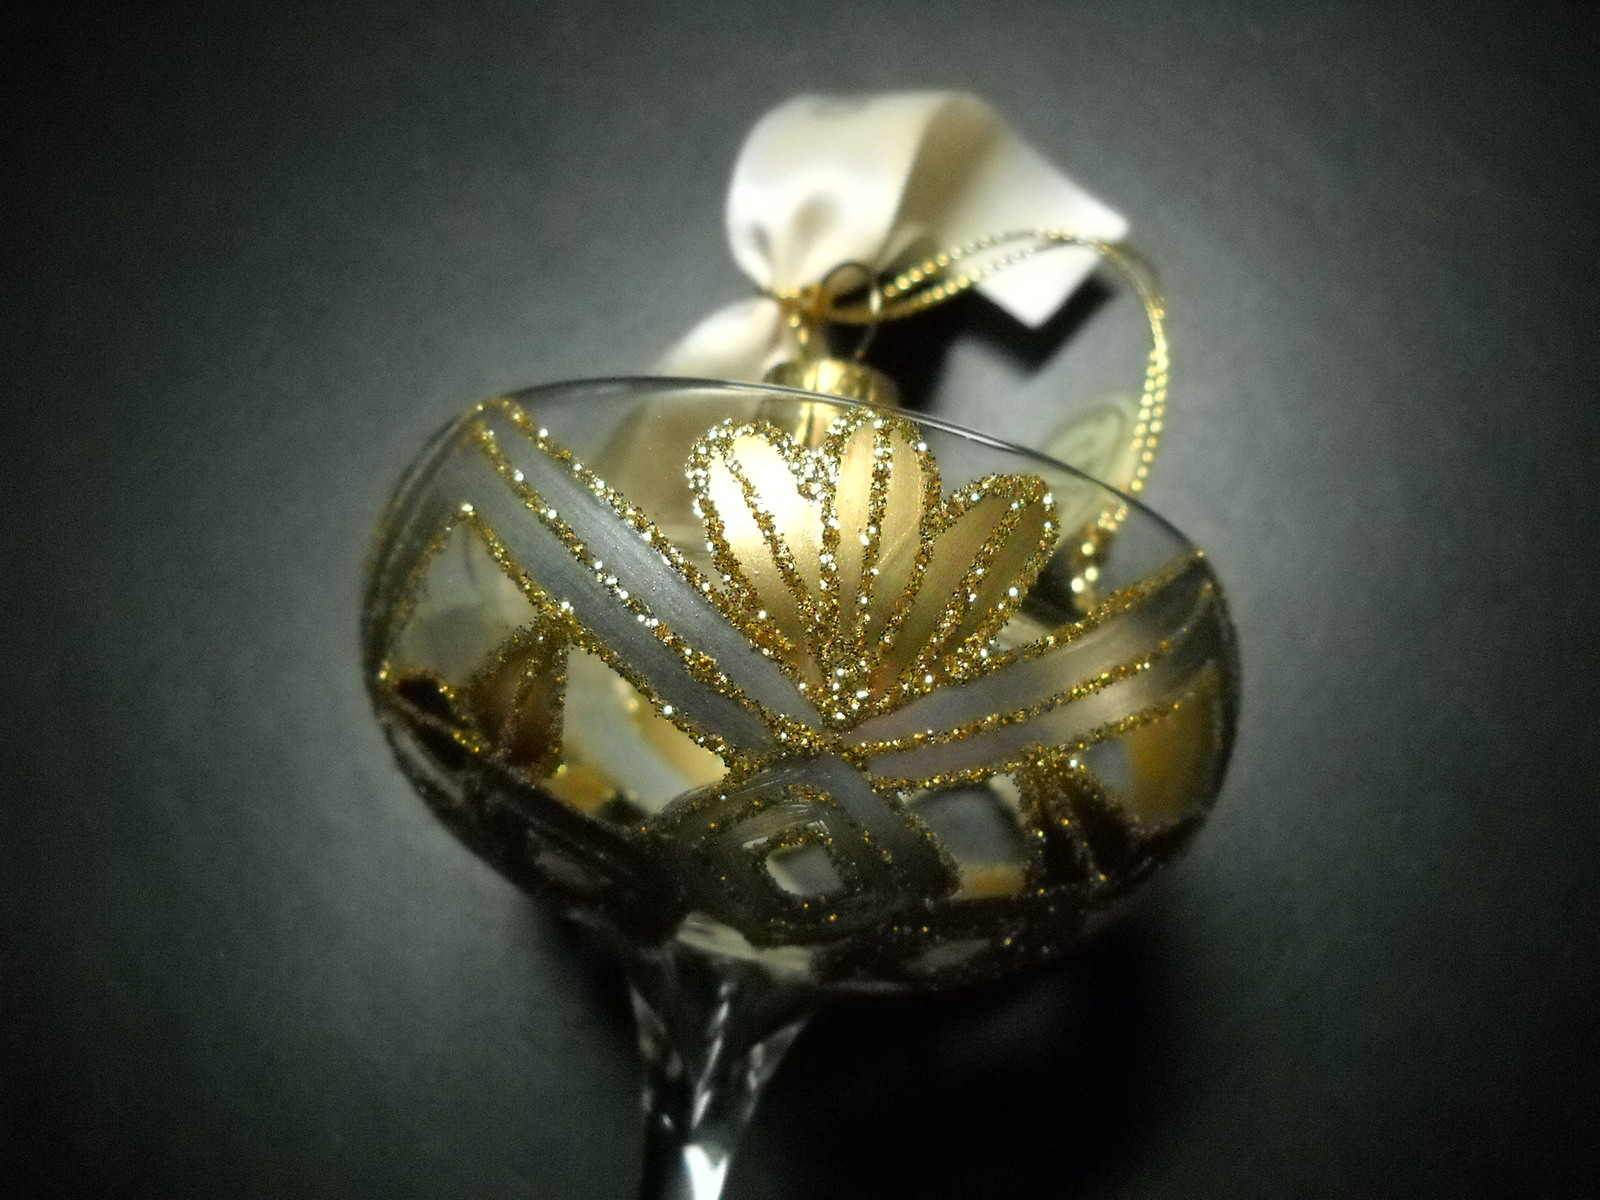 Waterford Holiday Heirlooms Christmas Ornament New Years Toast Mouth Blown Glass image 3